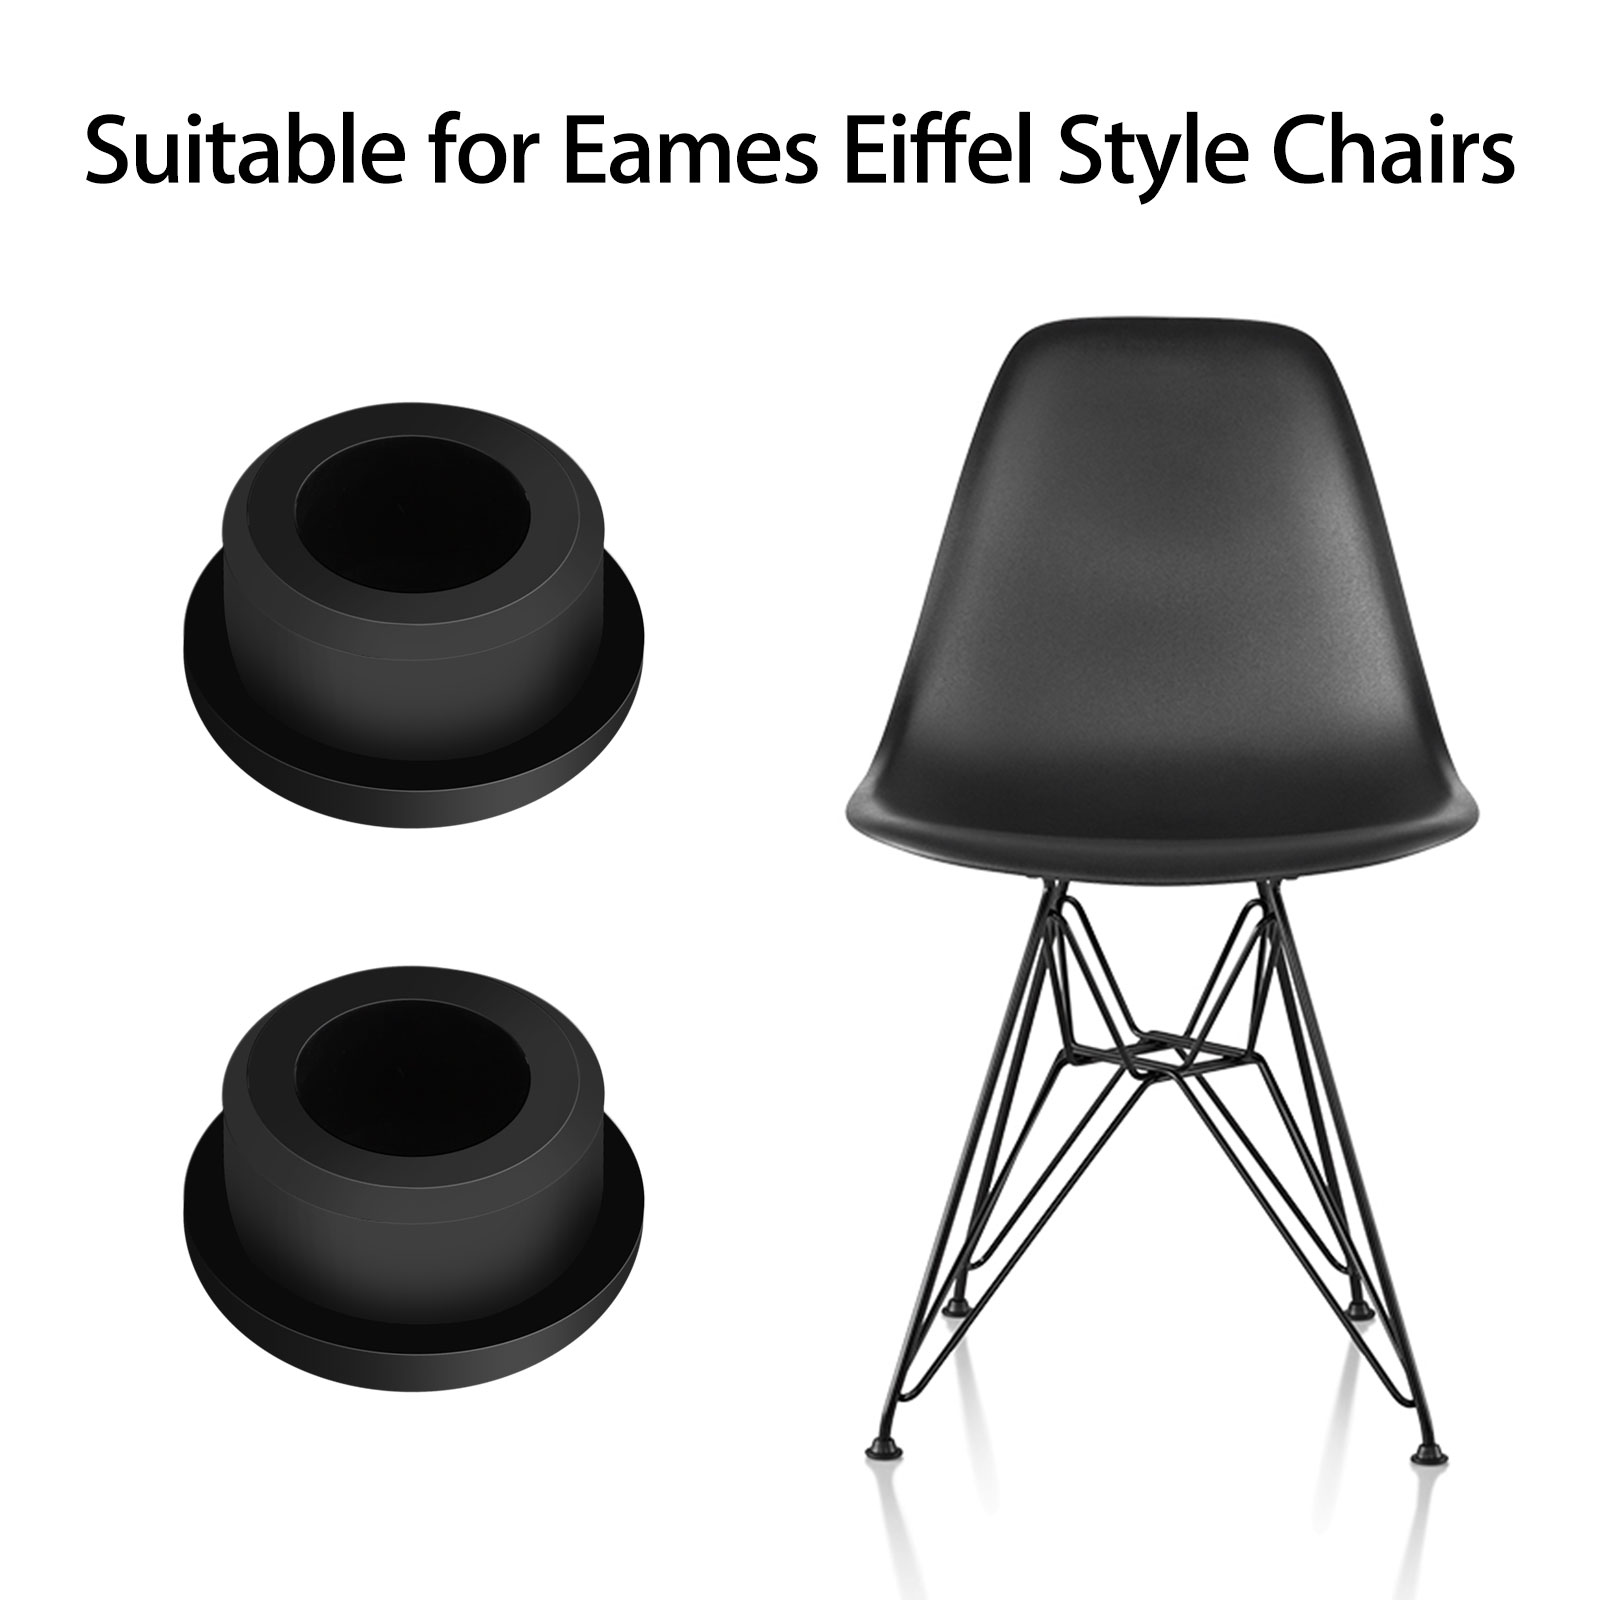 4pcs Chair Glides Replacement Fit For Eames Eiffel Style Furniture Feet Black 3